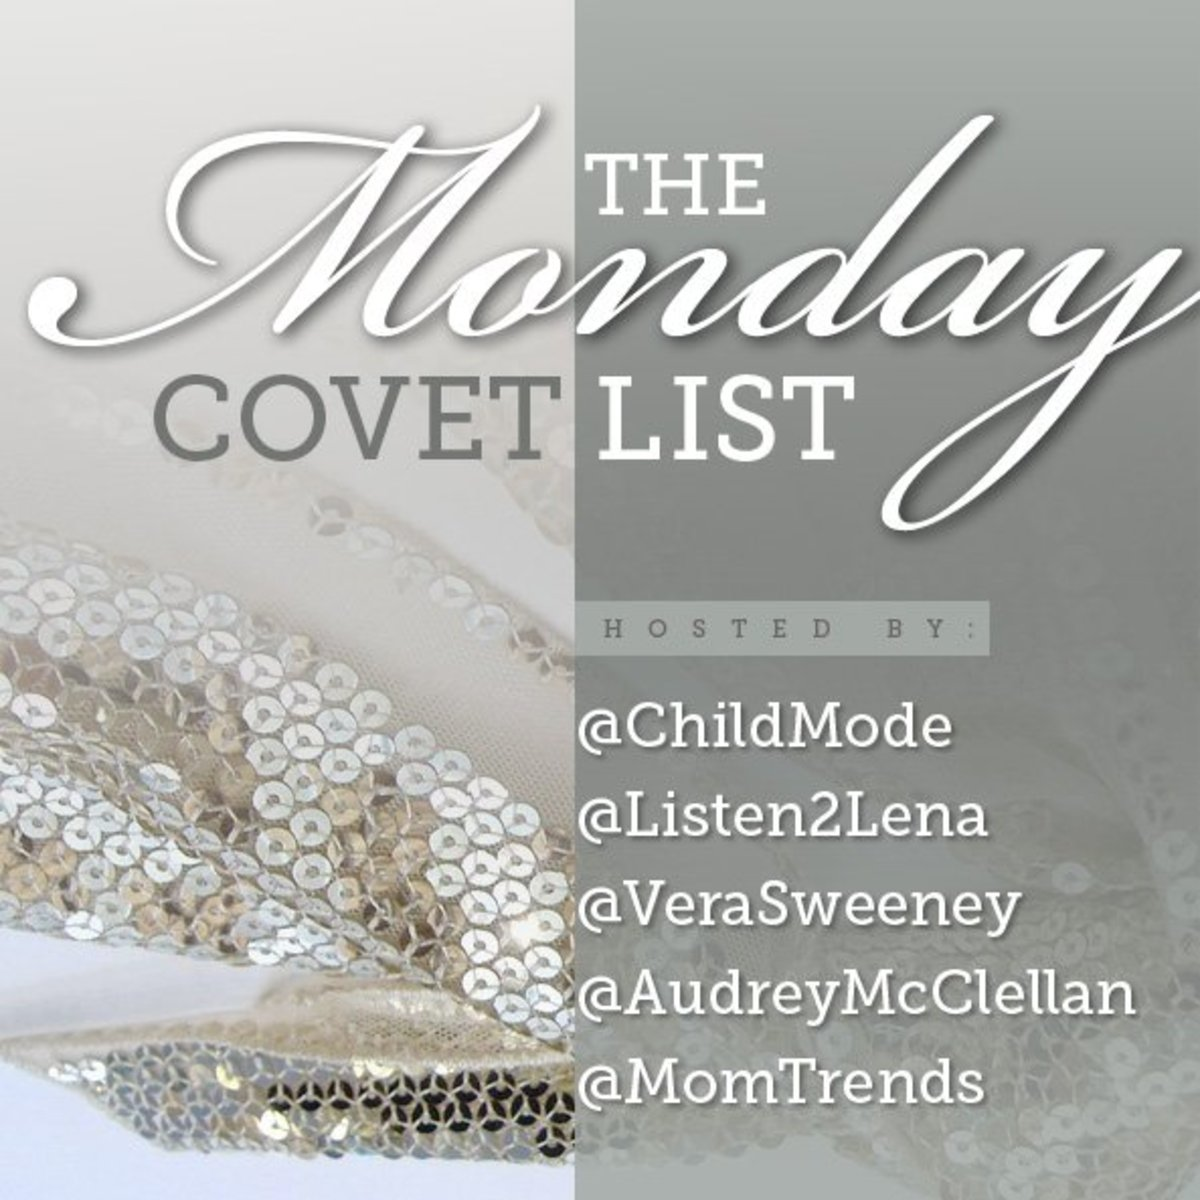 Monday Covet List